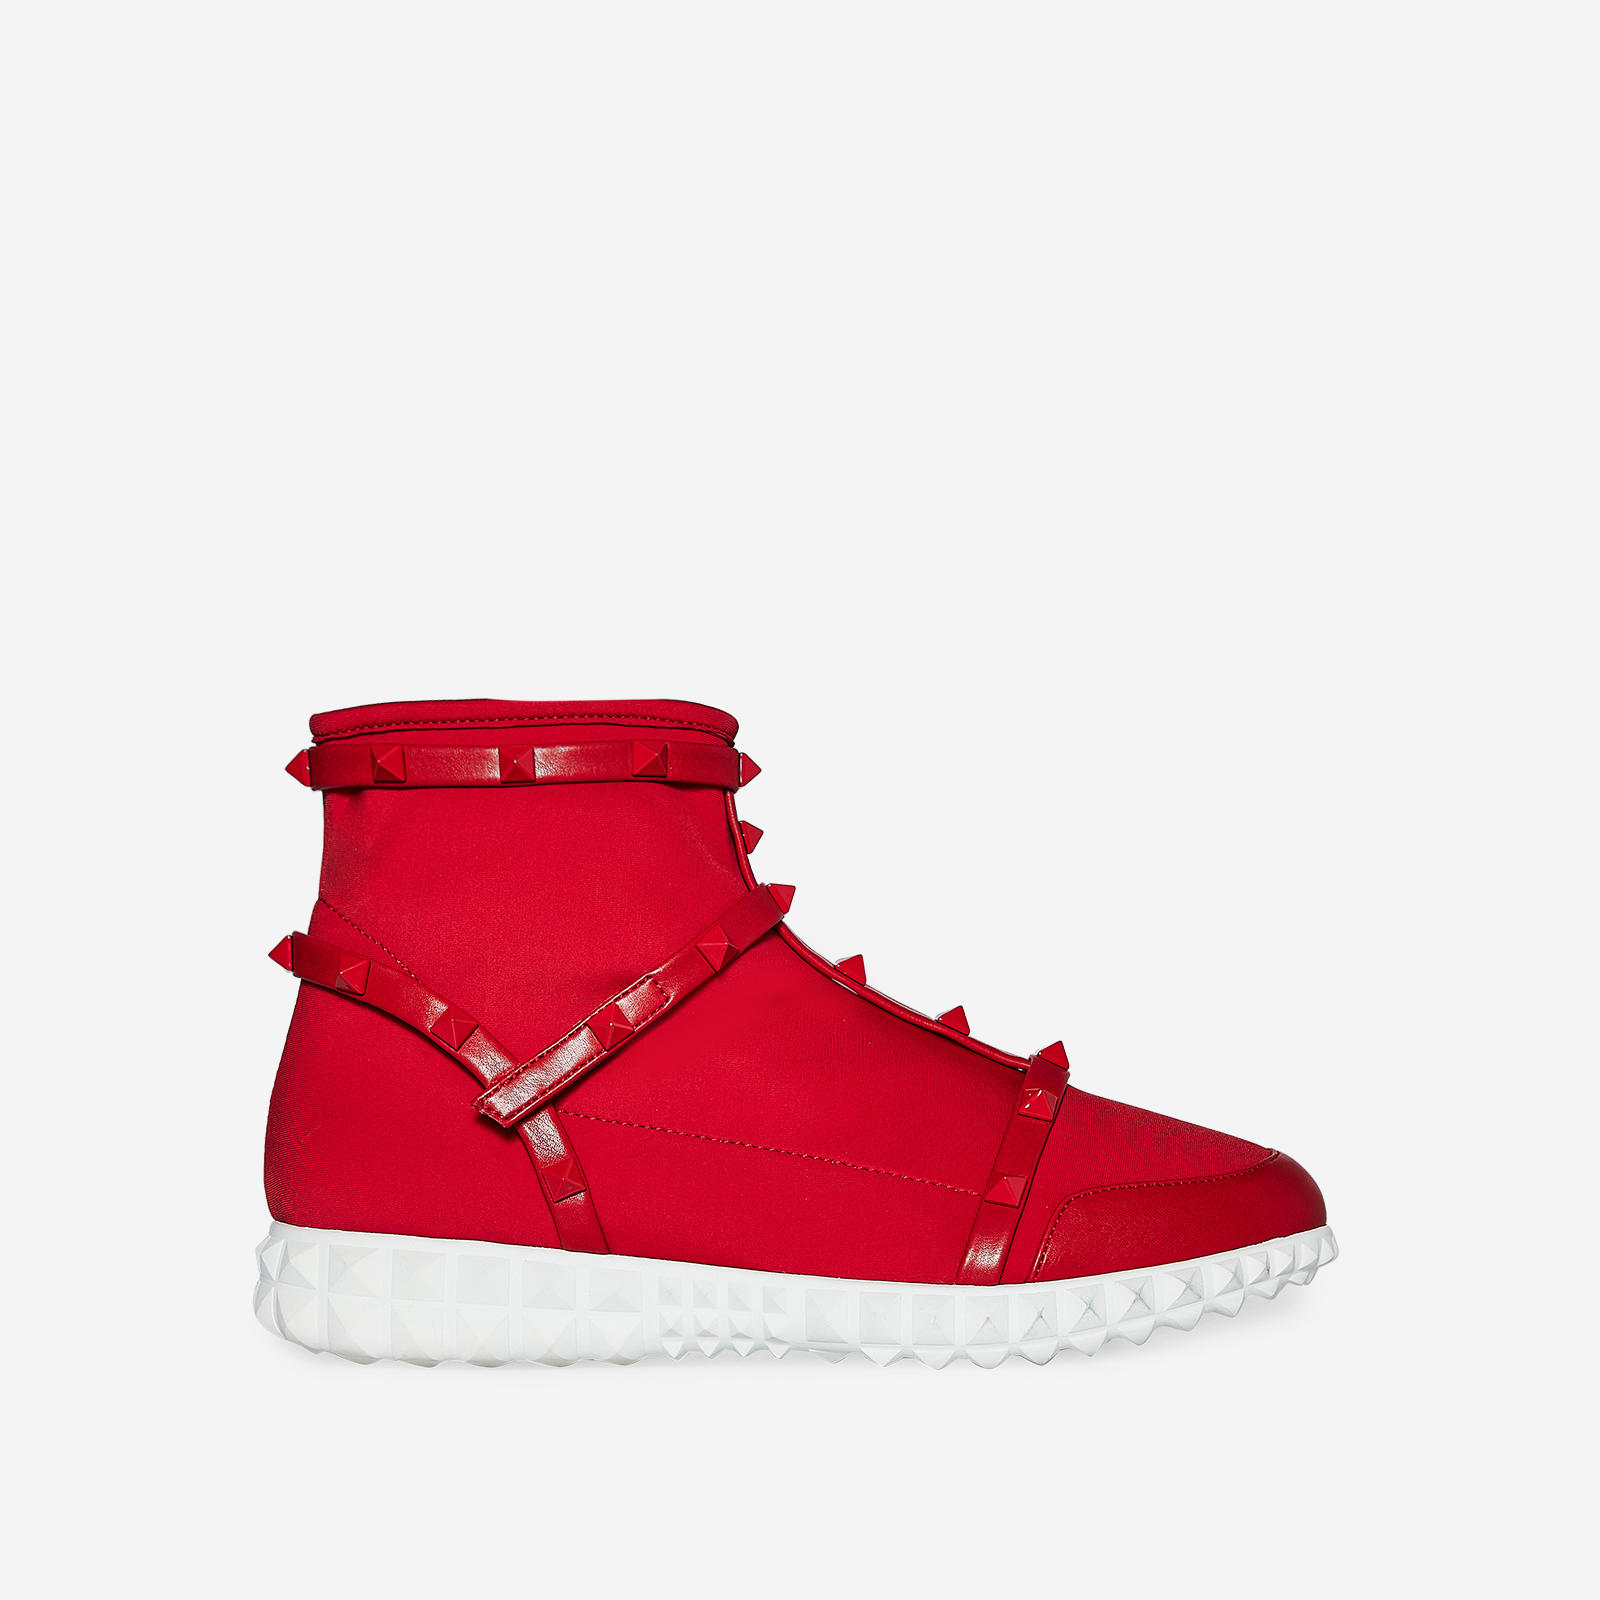 Rocha Studded Detail Trainer In Red Knit